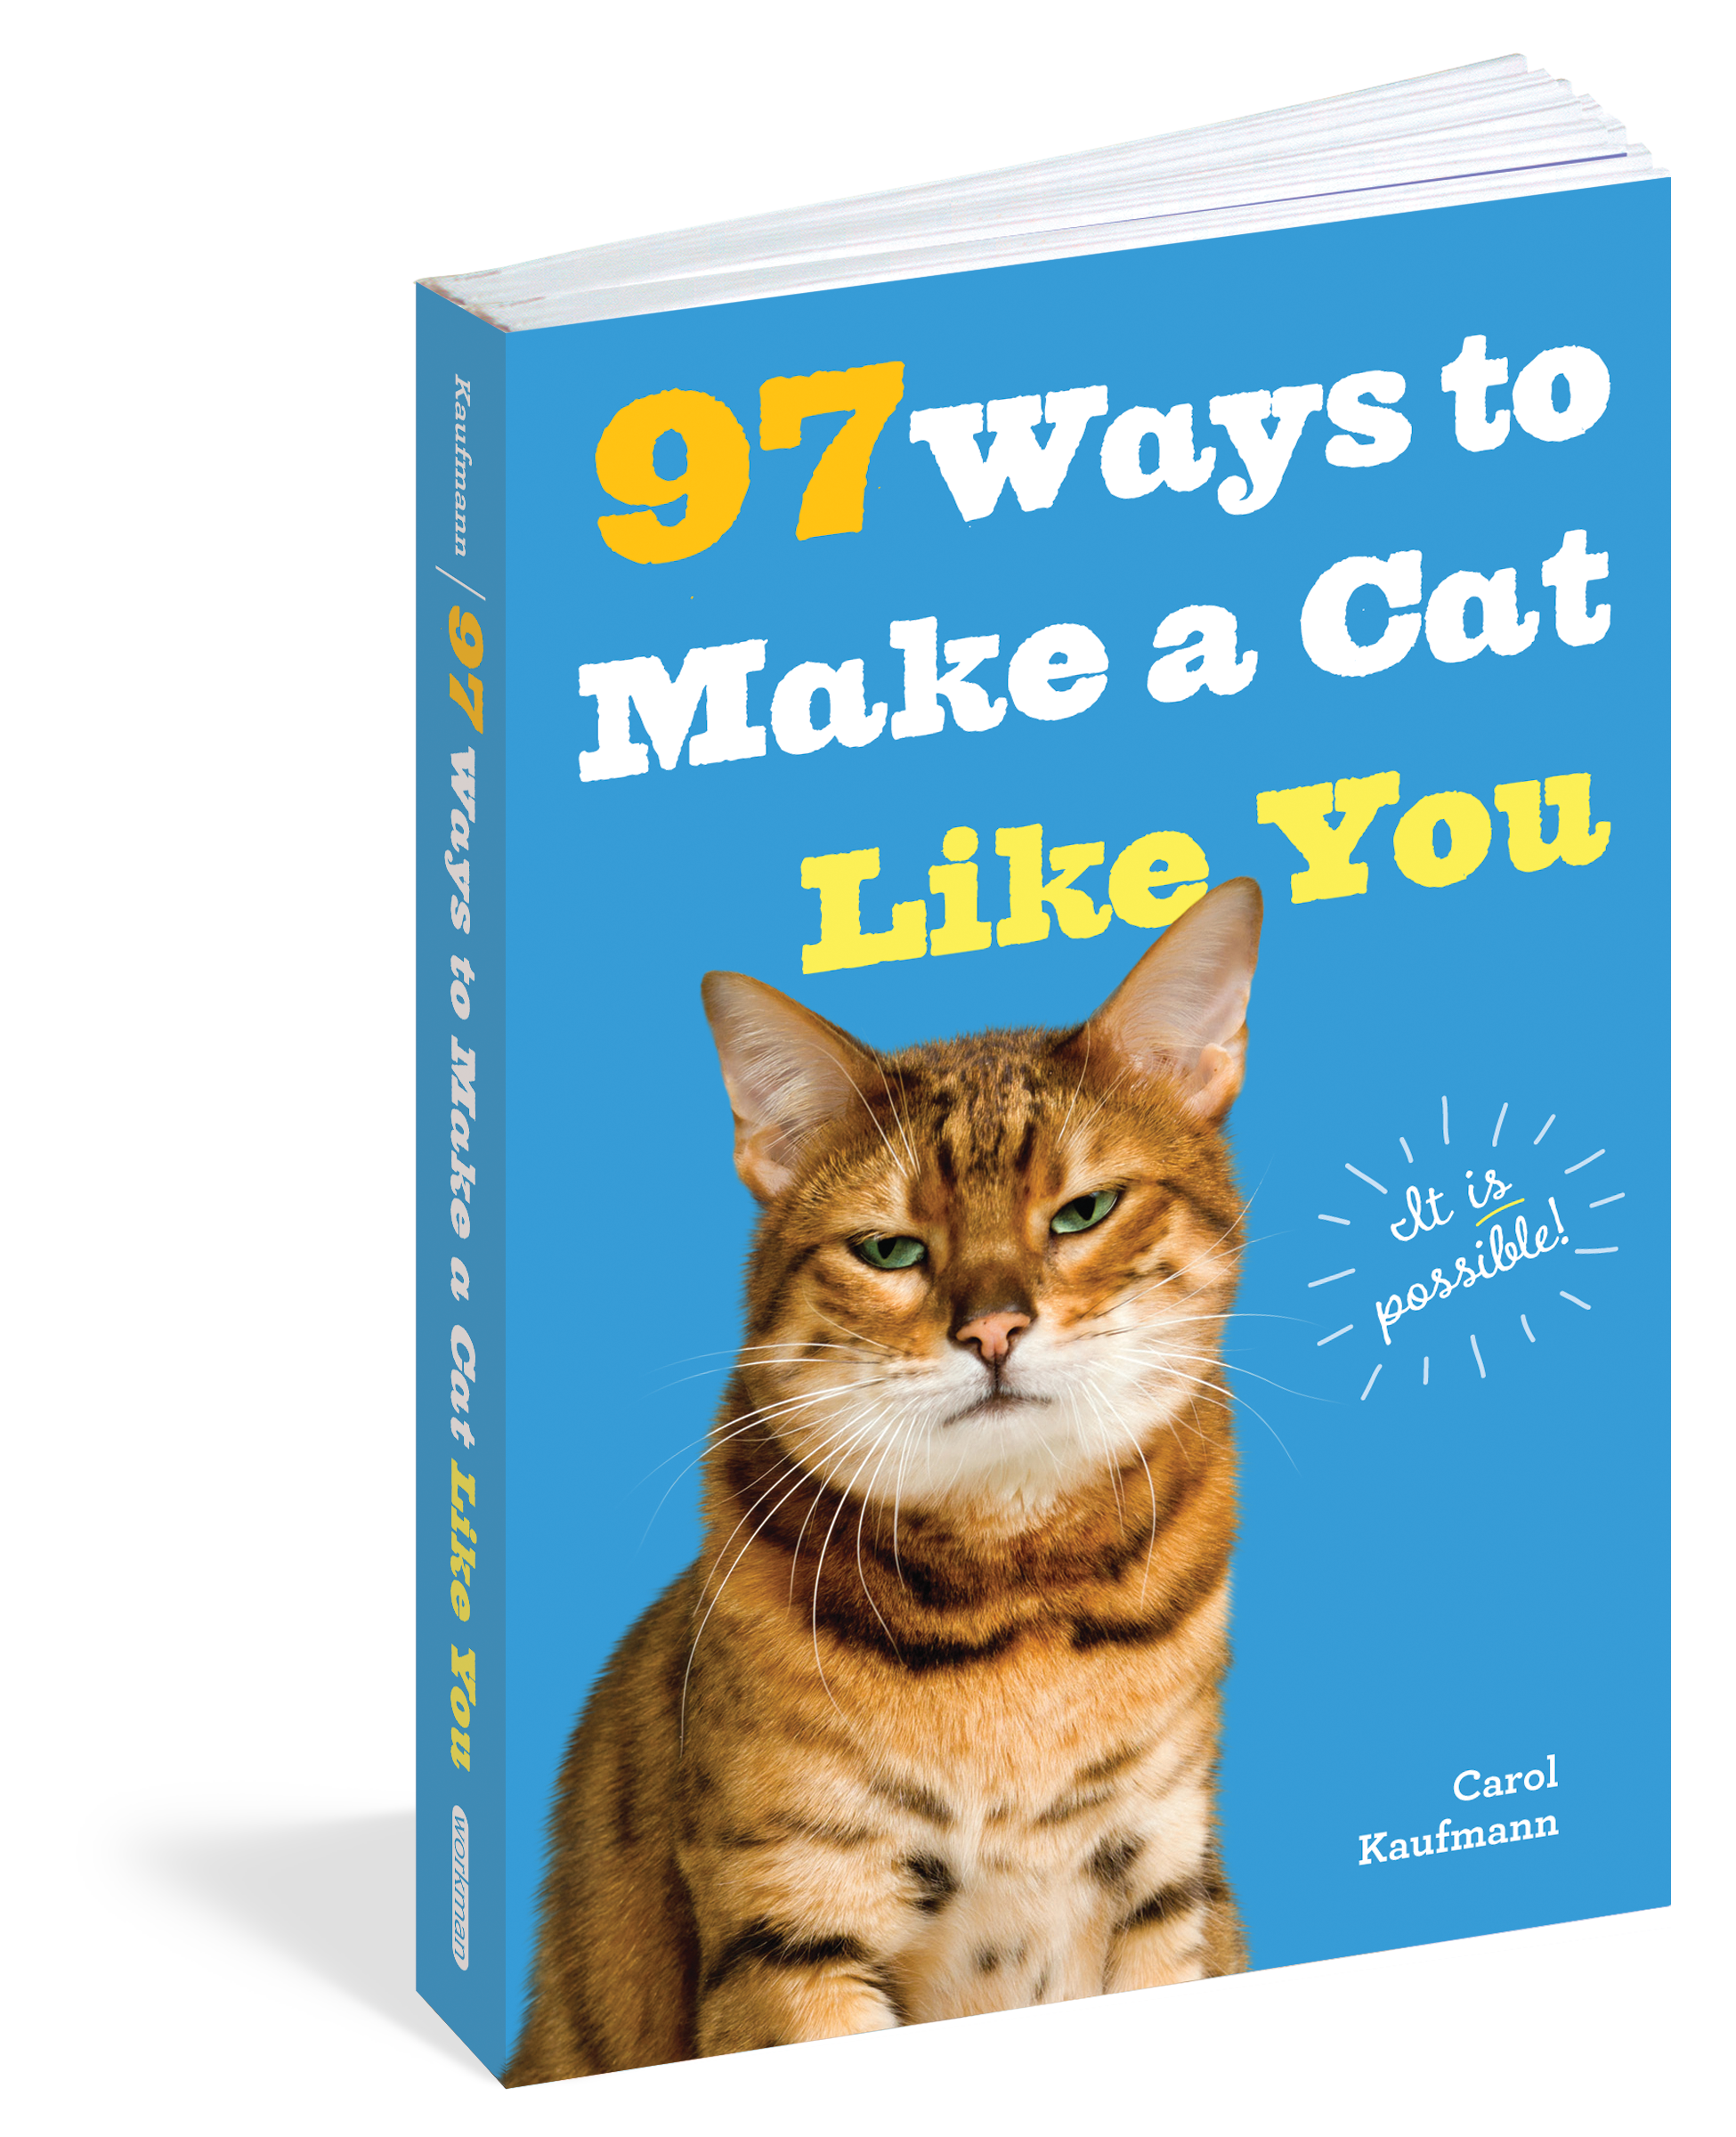 97 Ways to Make a Cat Like You Workman Publishing